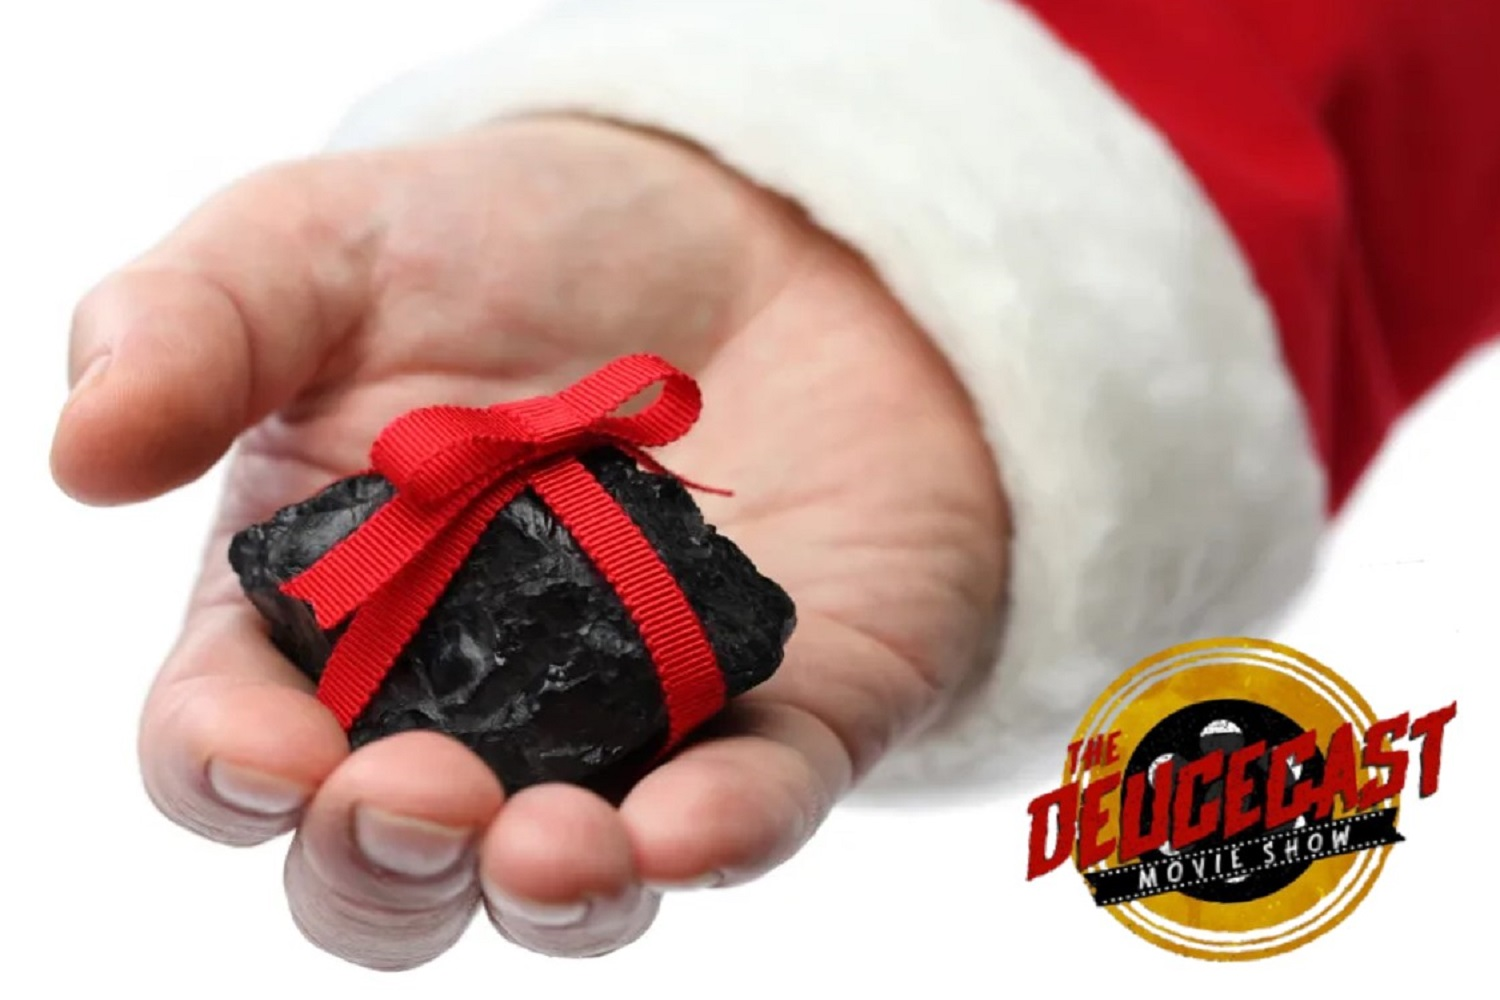 The Deucecast Movie Show #411: 2019s Lumps of Coal